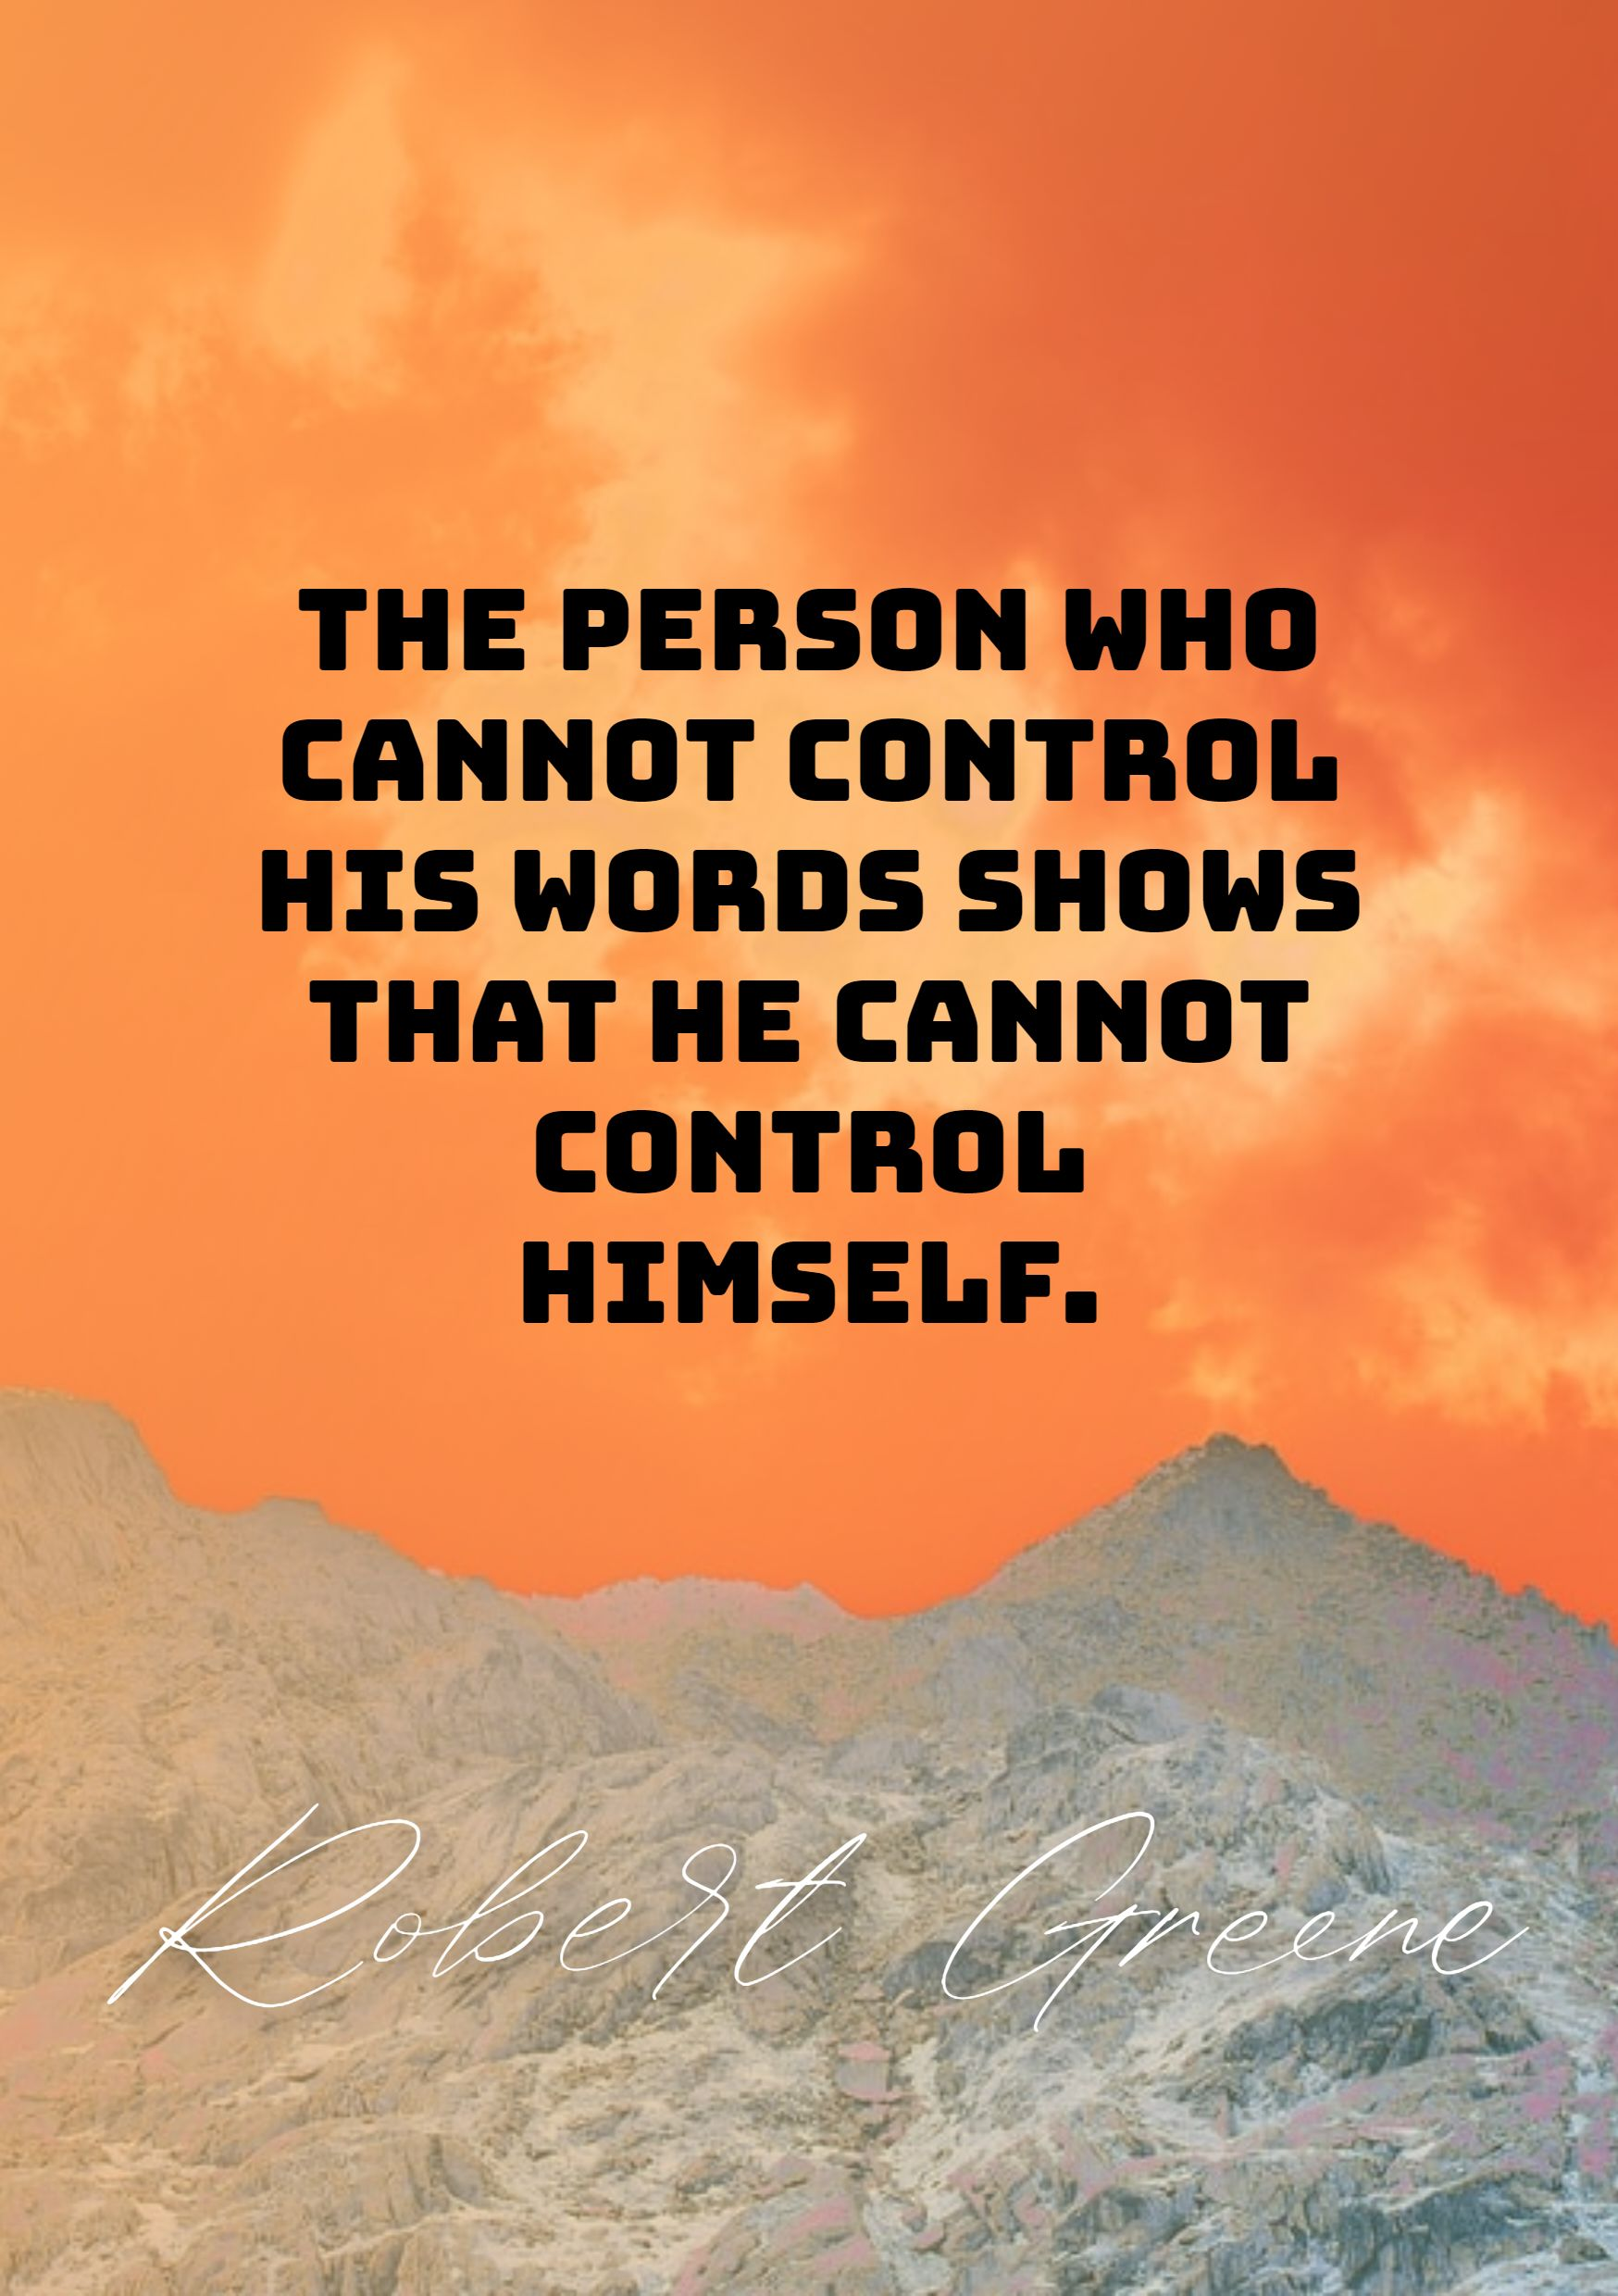 Quotes image of The person who cannot control his words shows that he cannot control himself.